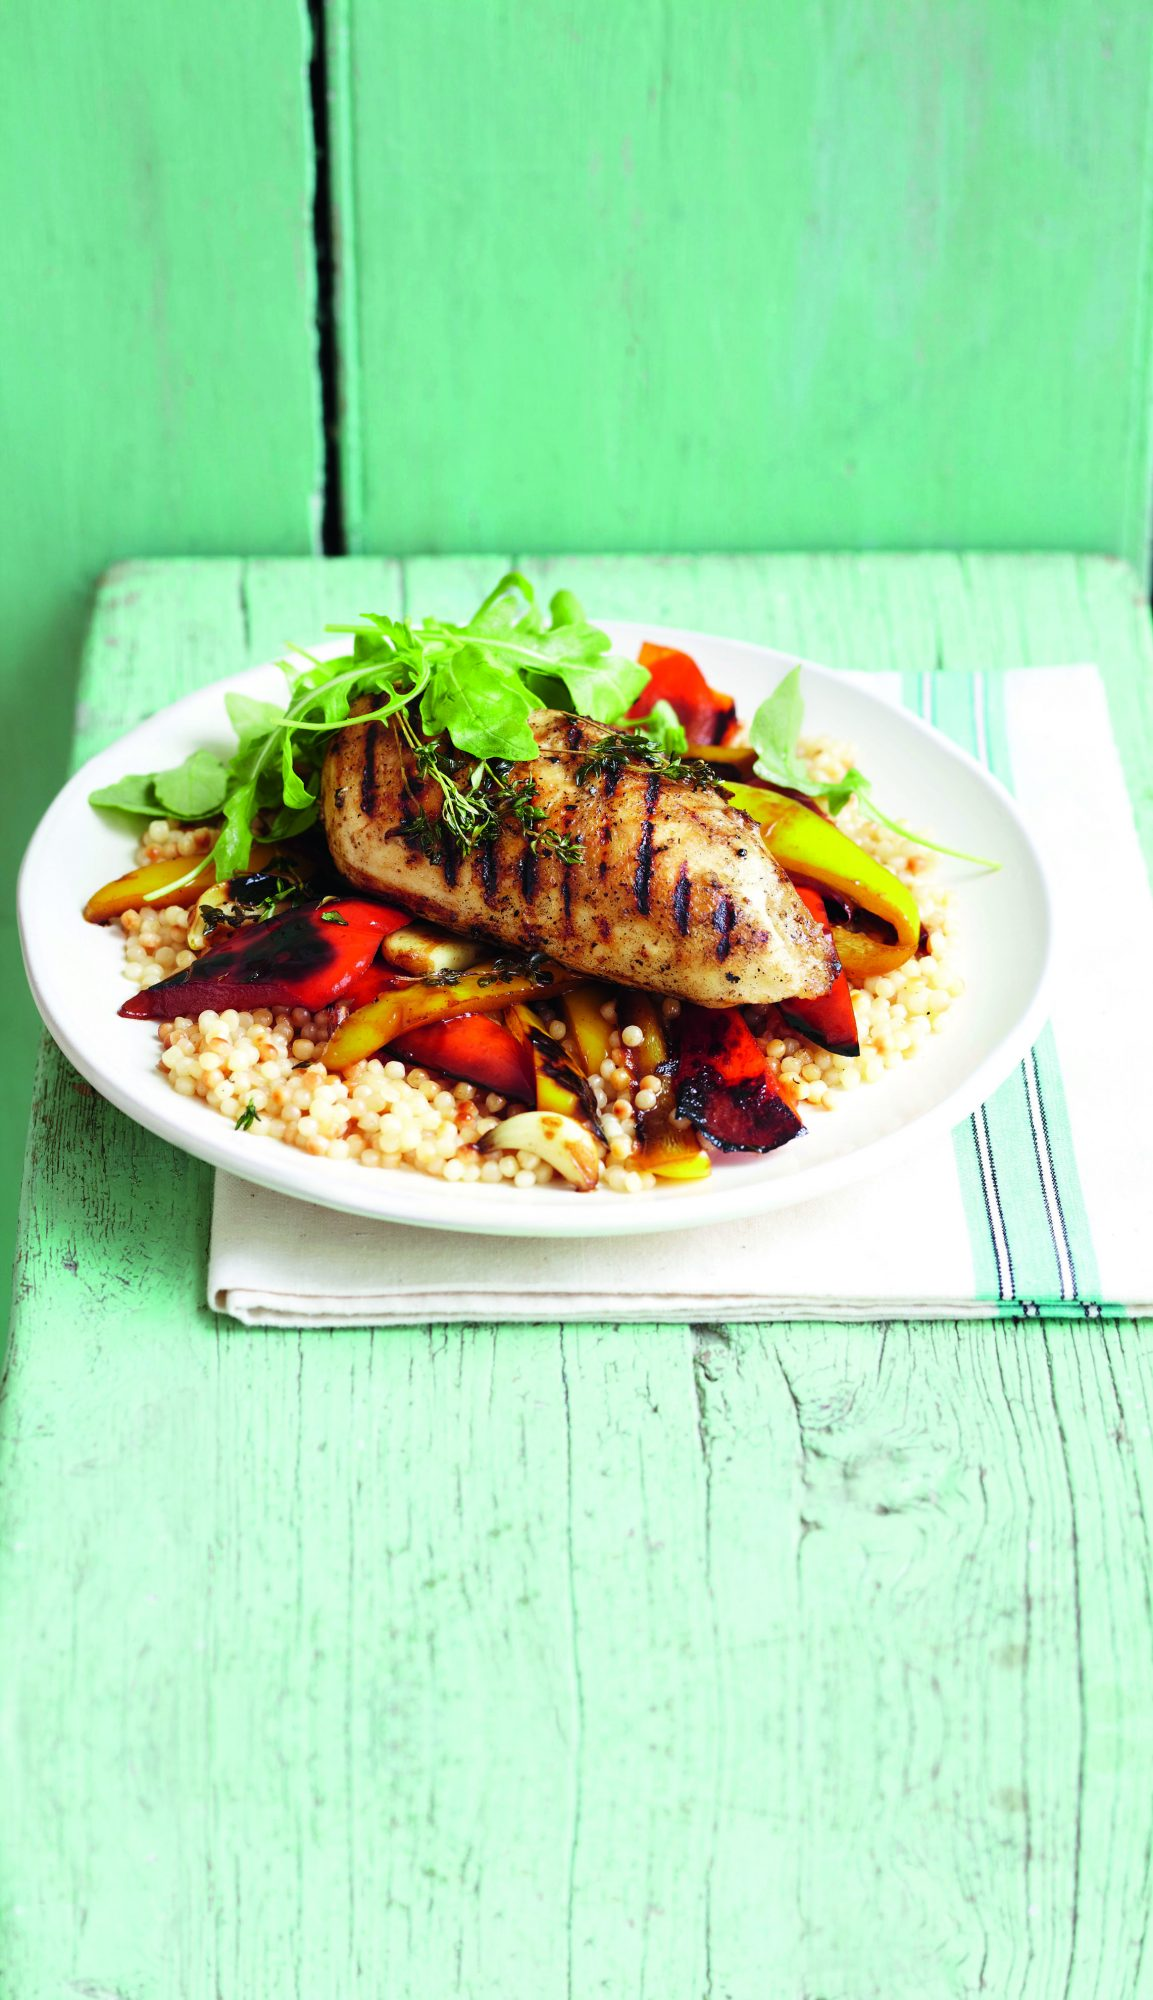 Pan-Fried Chicken With Balsamic Peppers & Couscous